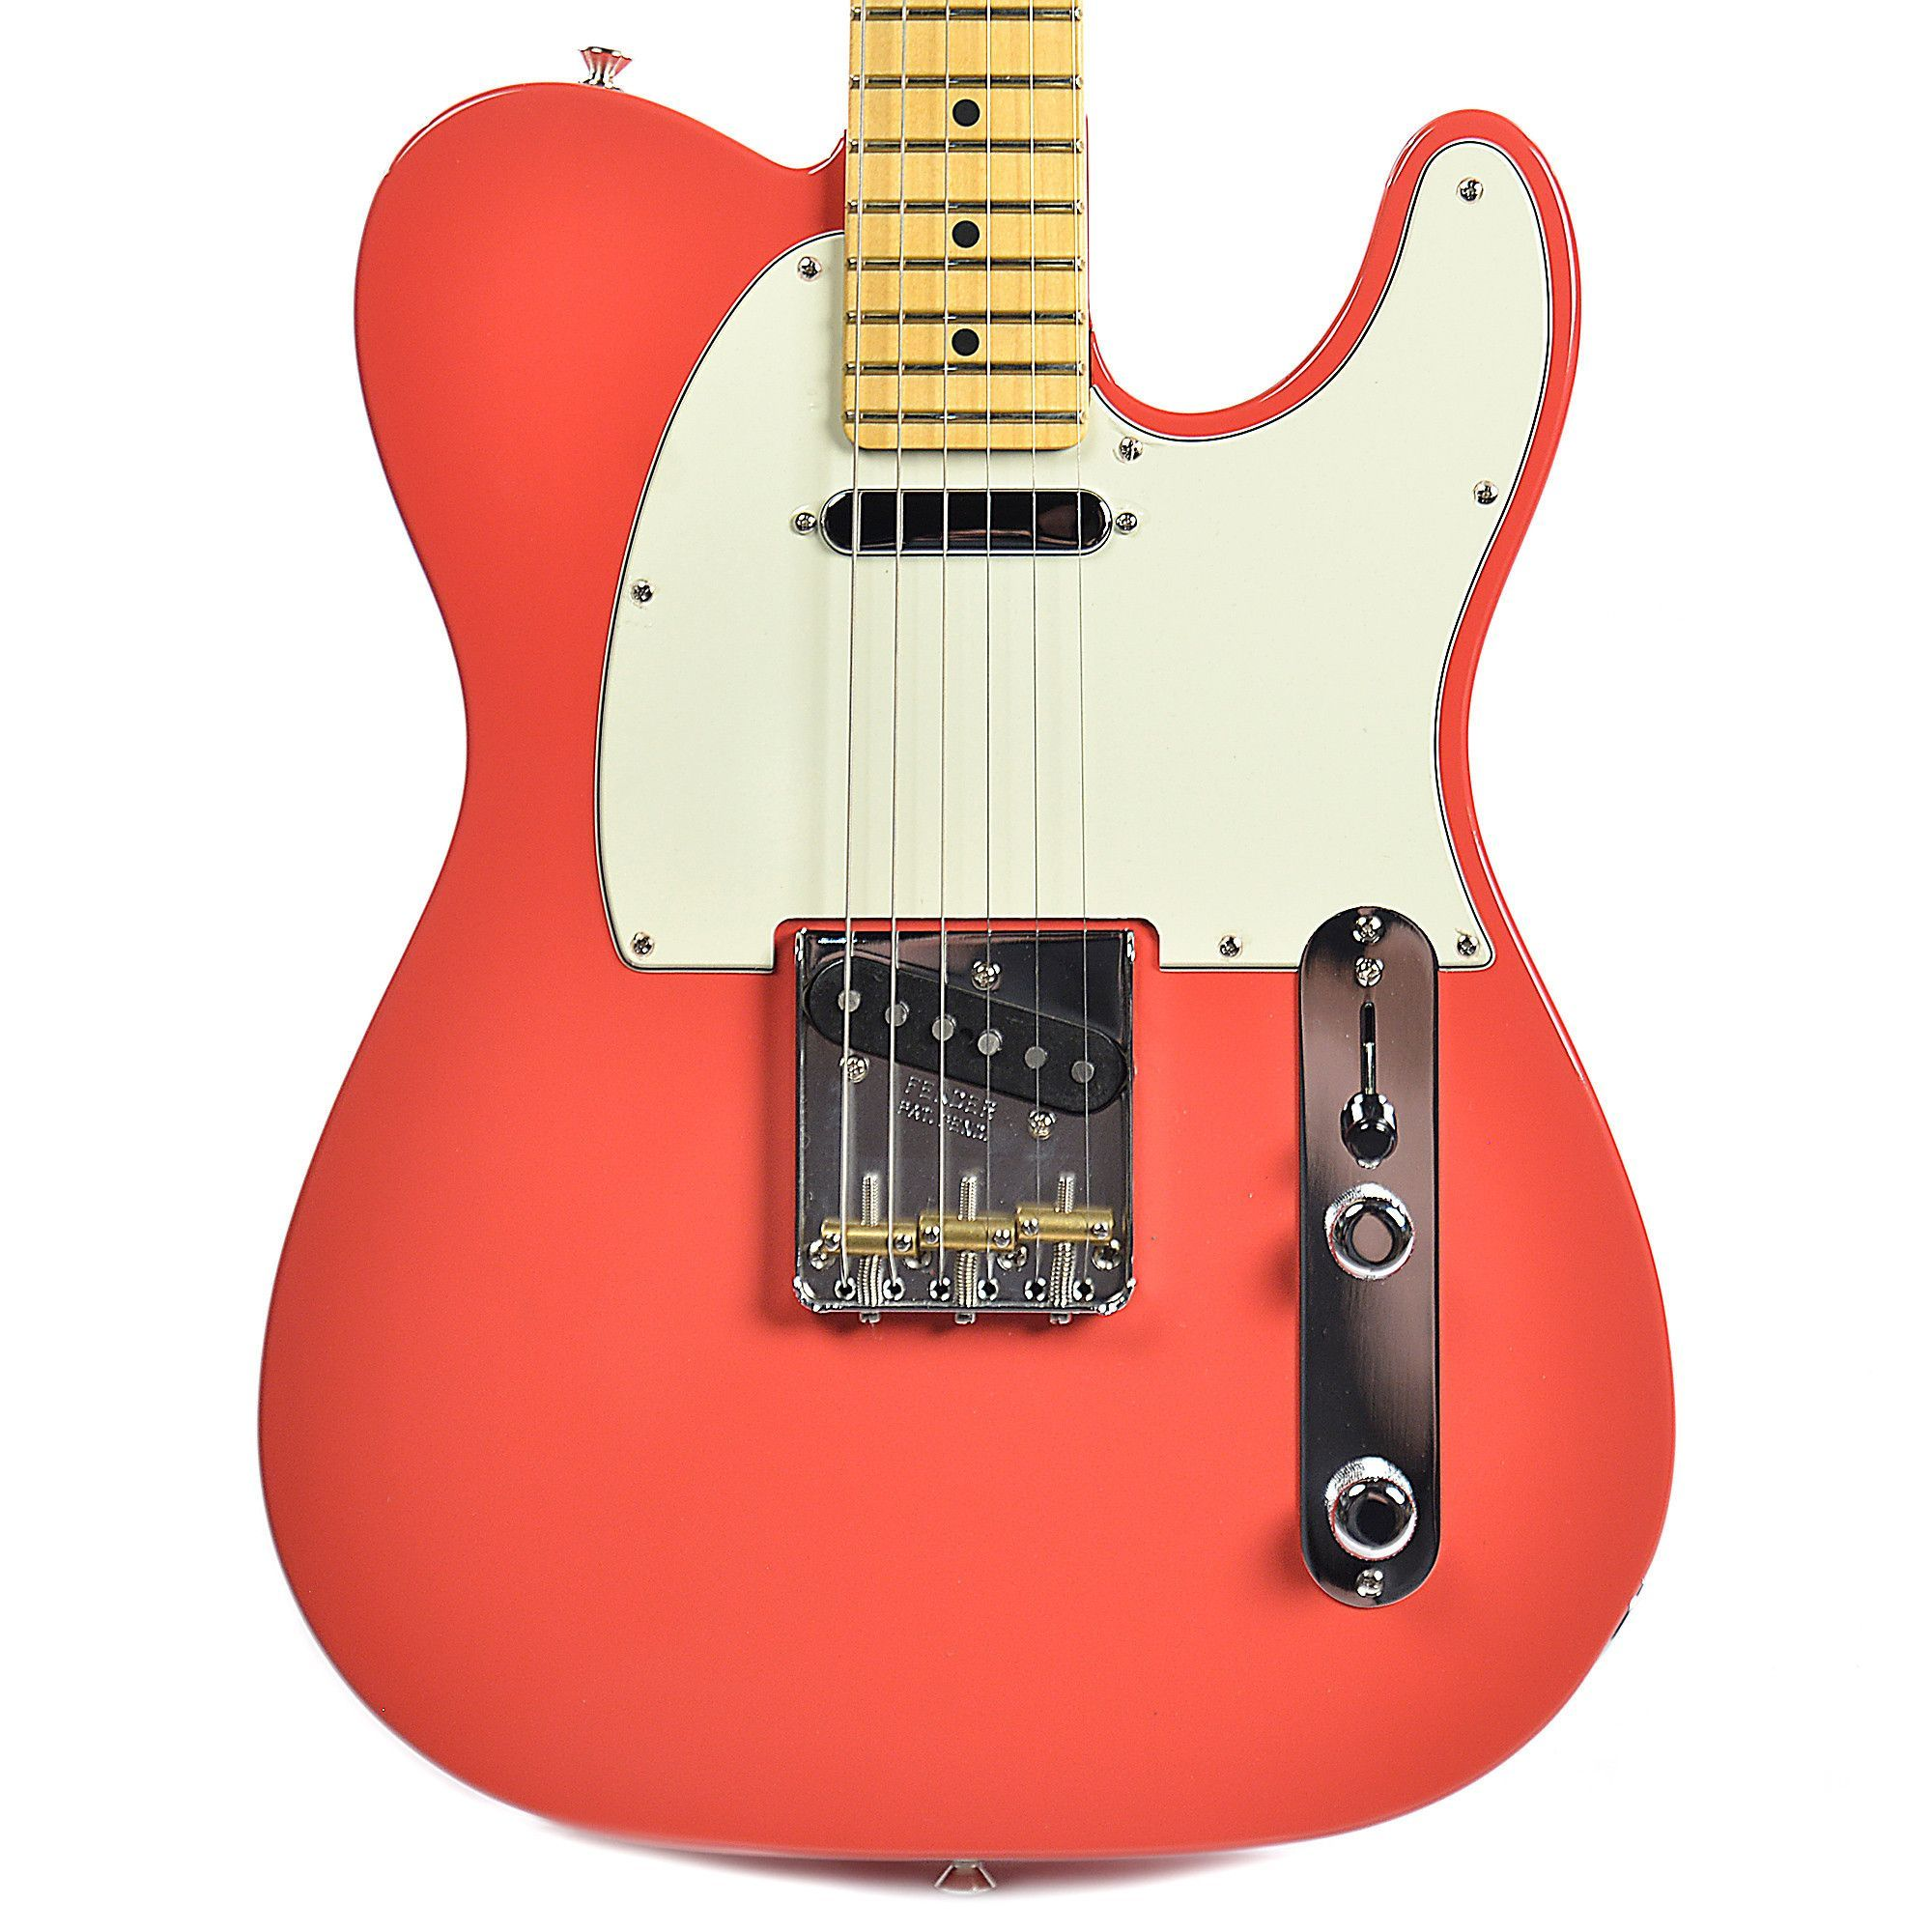 Fender American Special Telecaster Fiesta Red Limited Edition of 50